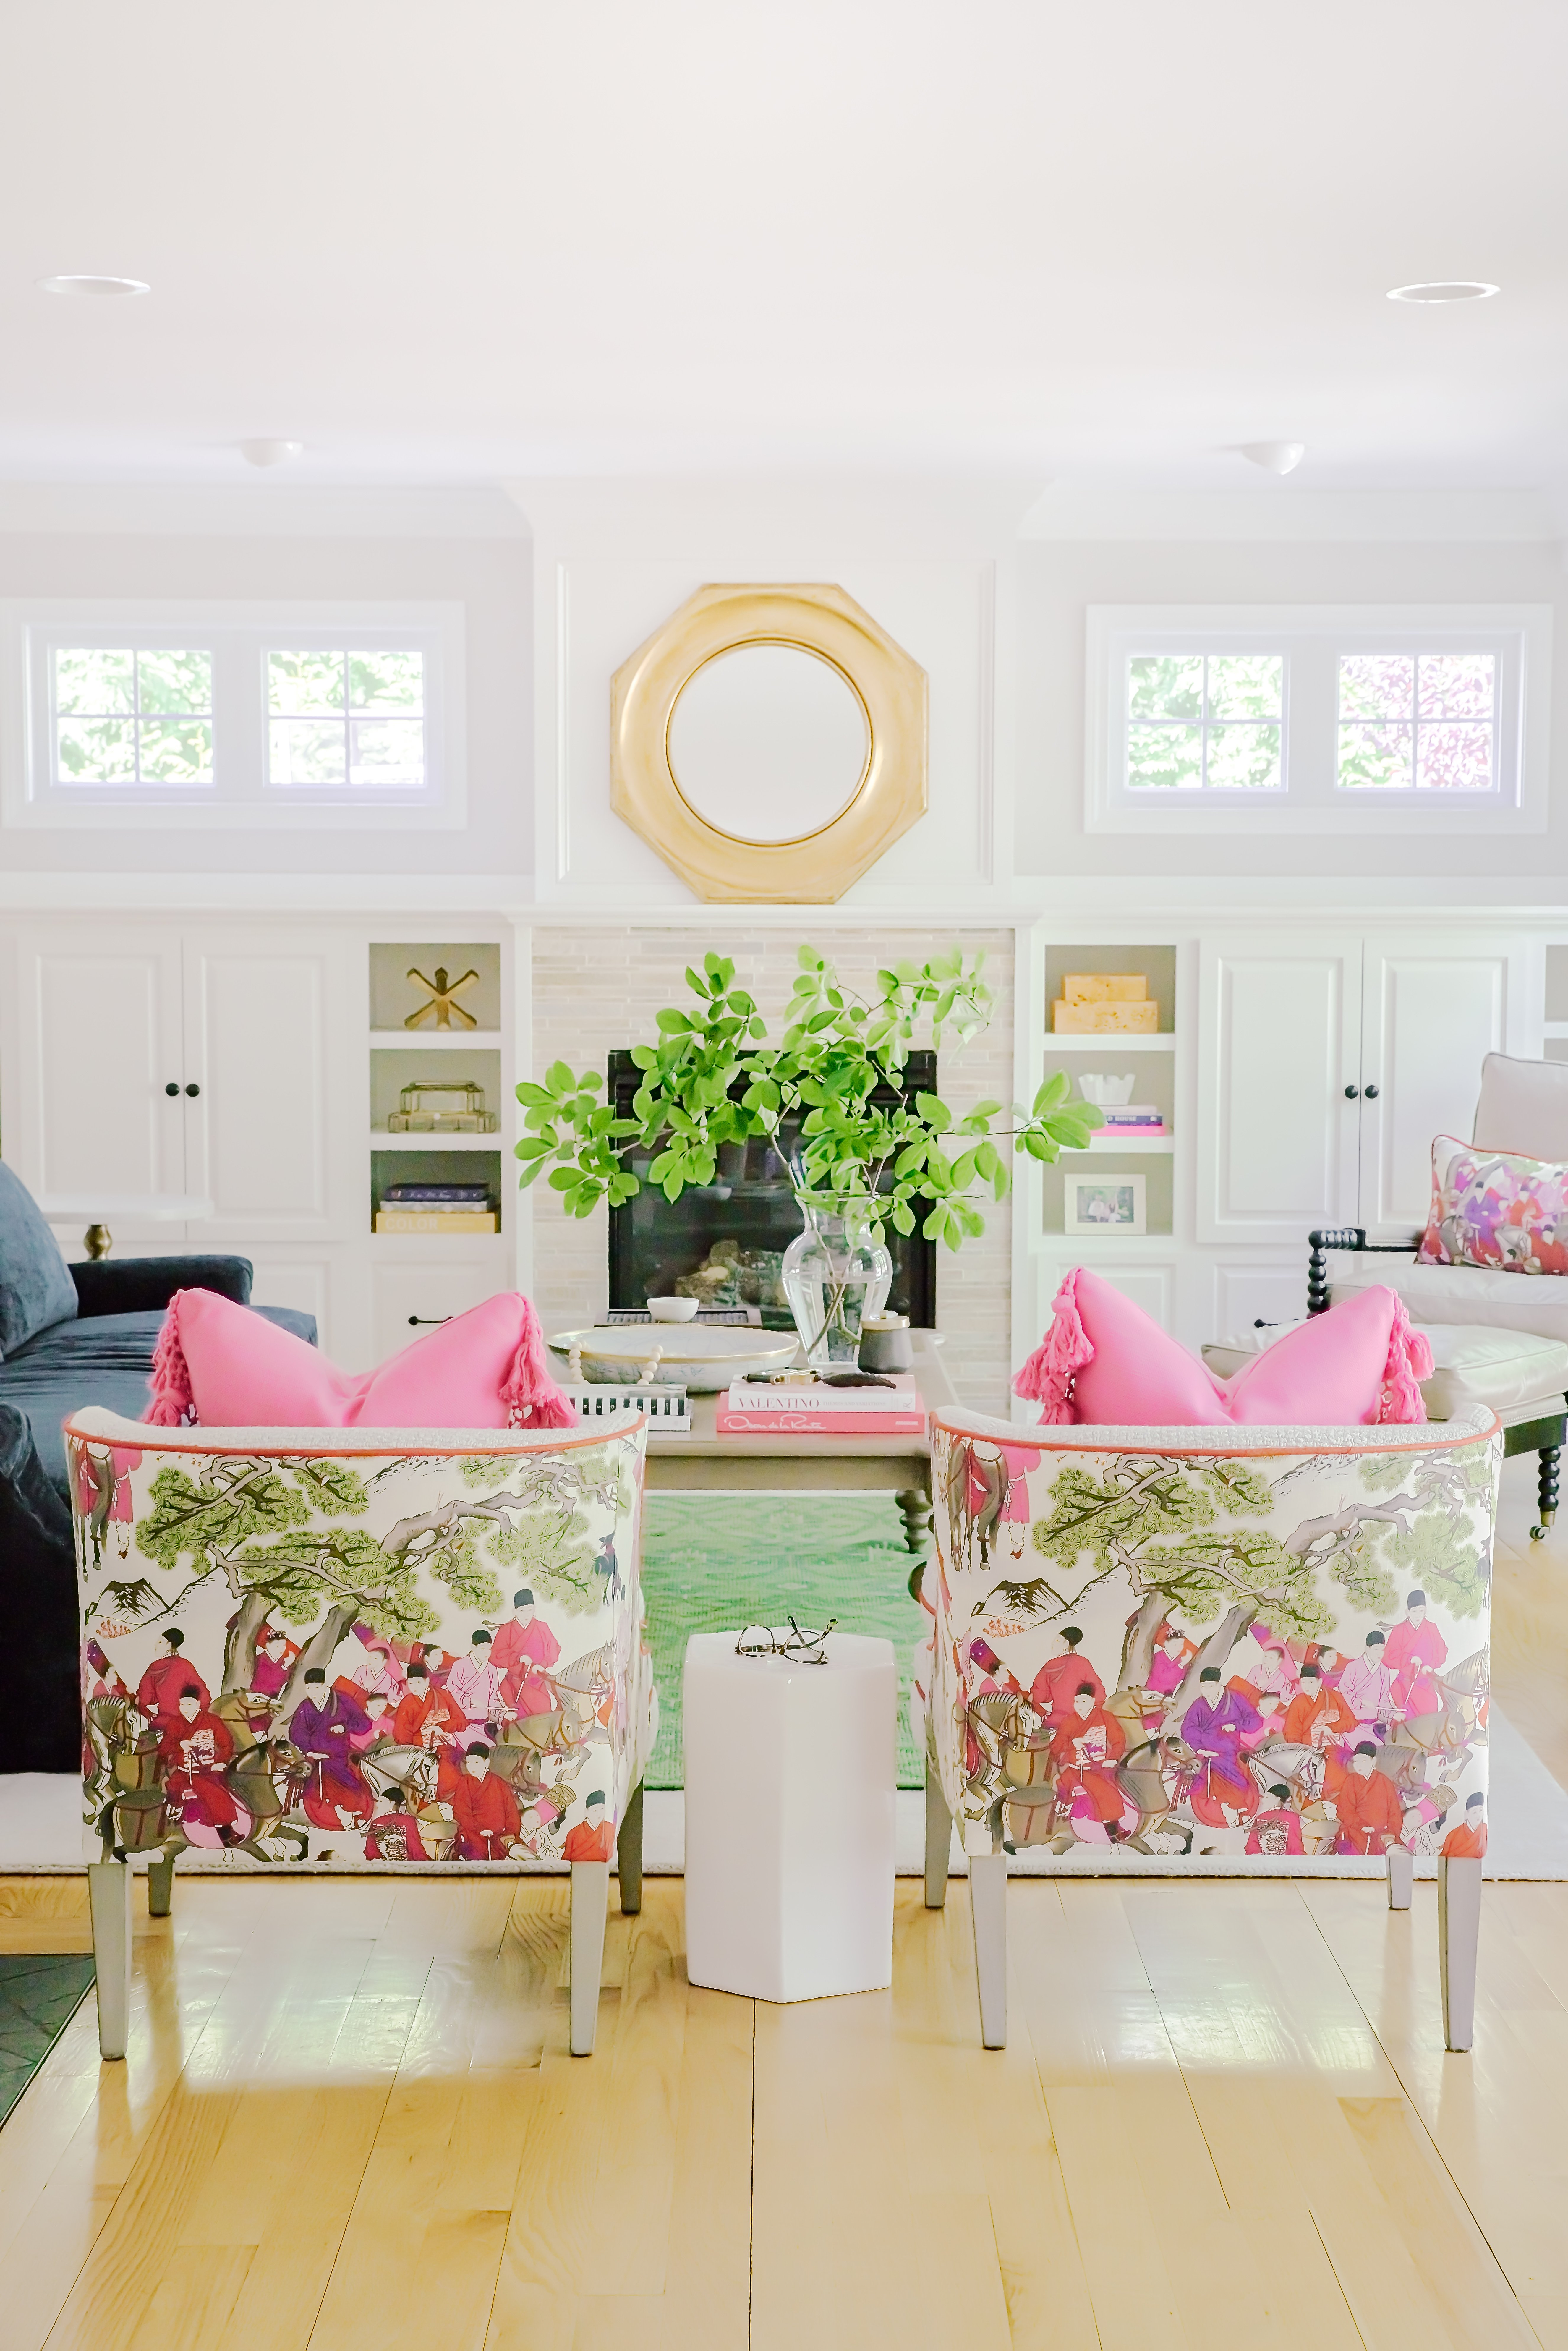 Sylvan - Blakely Interior Design